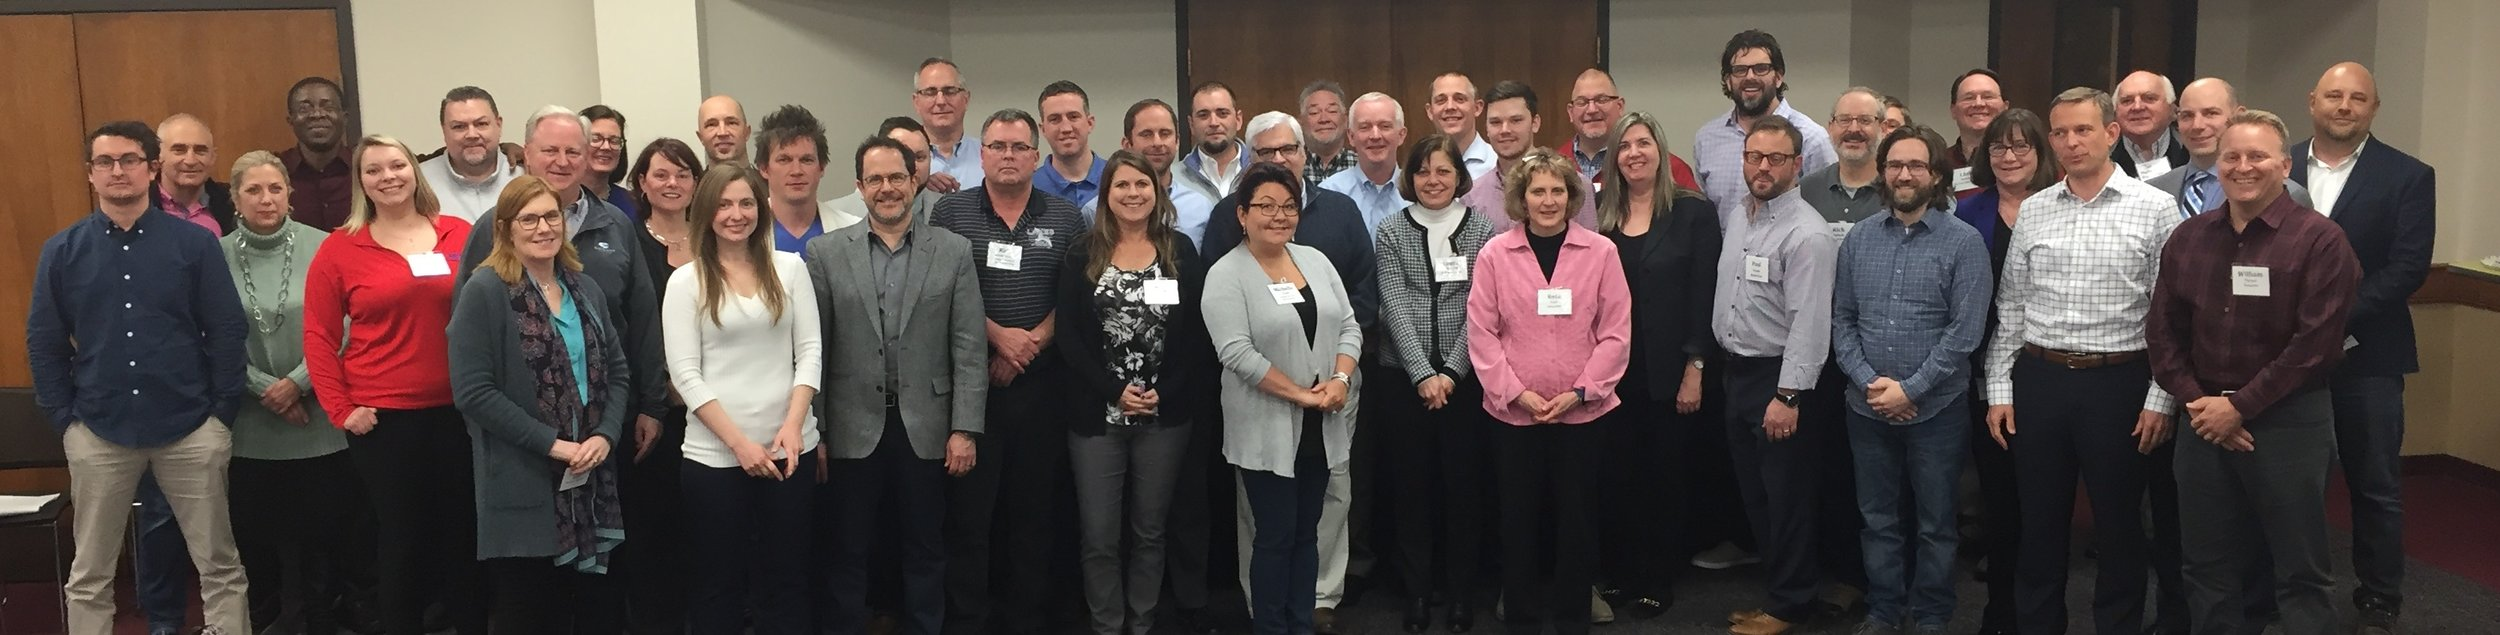 Scalerator NEO's second cohort attracts 16 companies - May 01, 2018 - CRAIN'S AKRON BUSINESS -The second cohort of the Scalerator NEO launched recently with 16 companies from four counties signed on for the educational program for entrepreneurs and leaders who are open to learning new ways to grow their businesses.